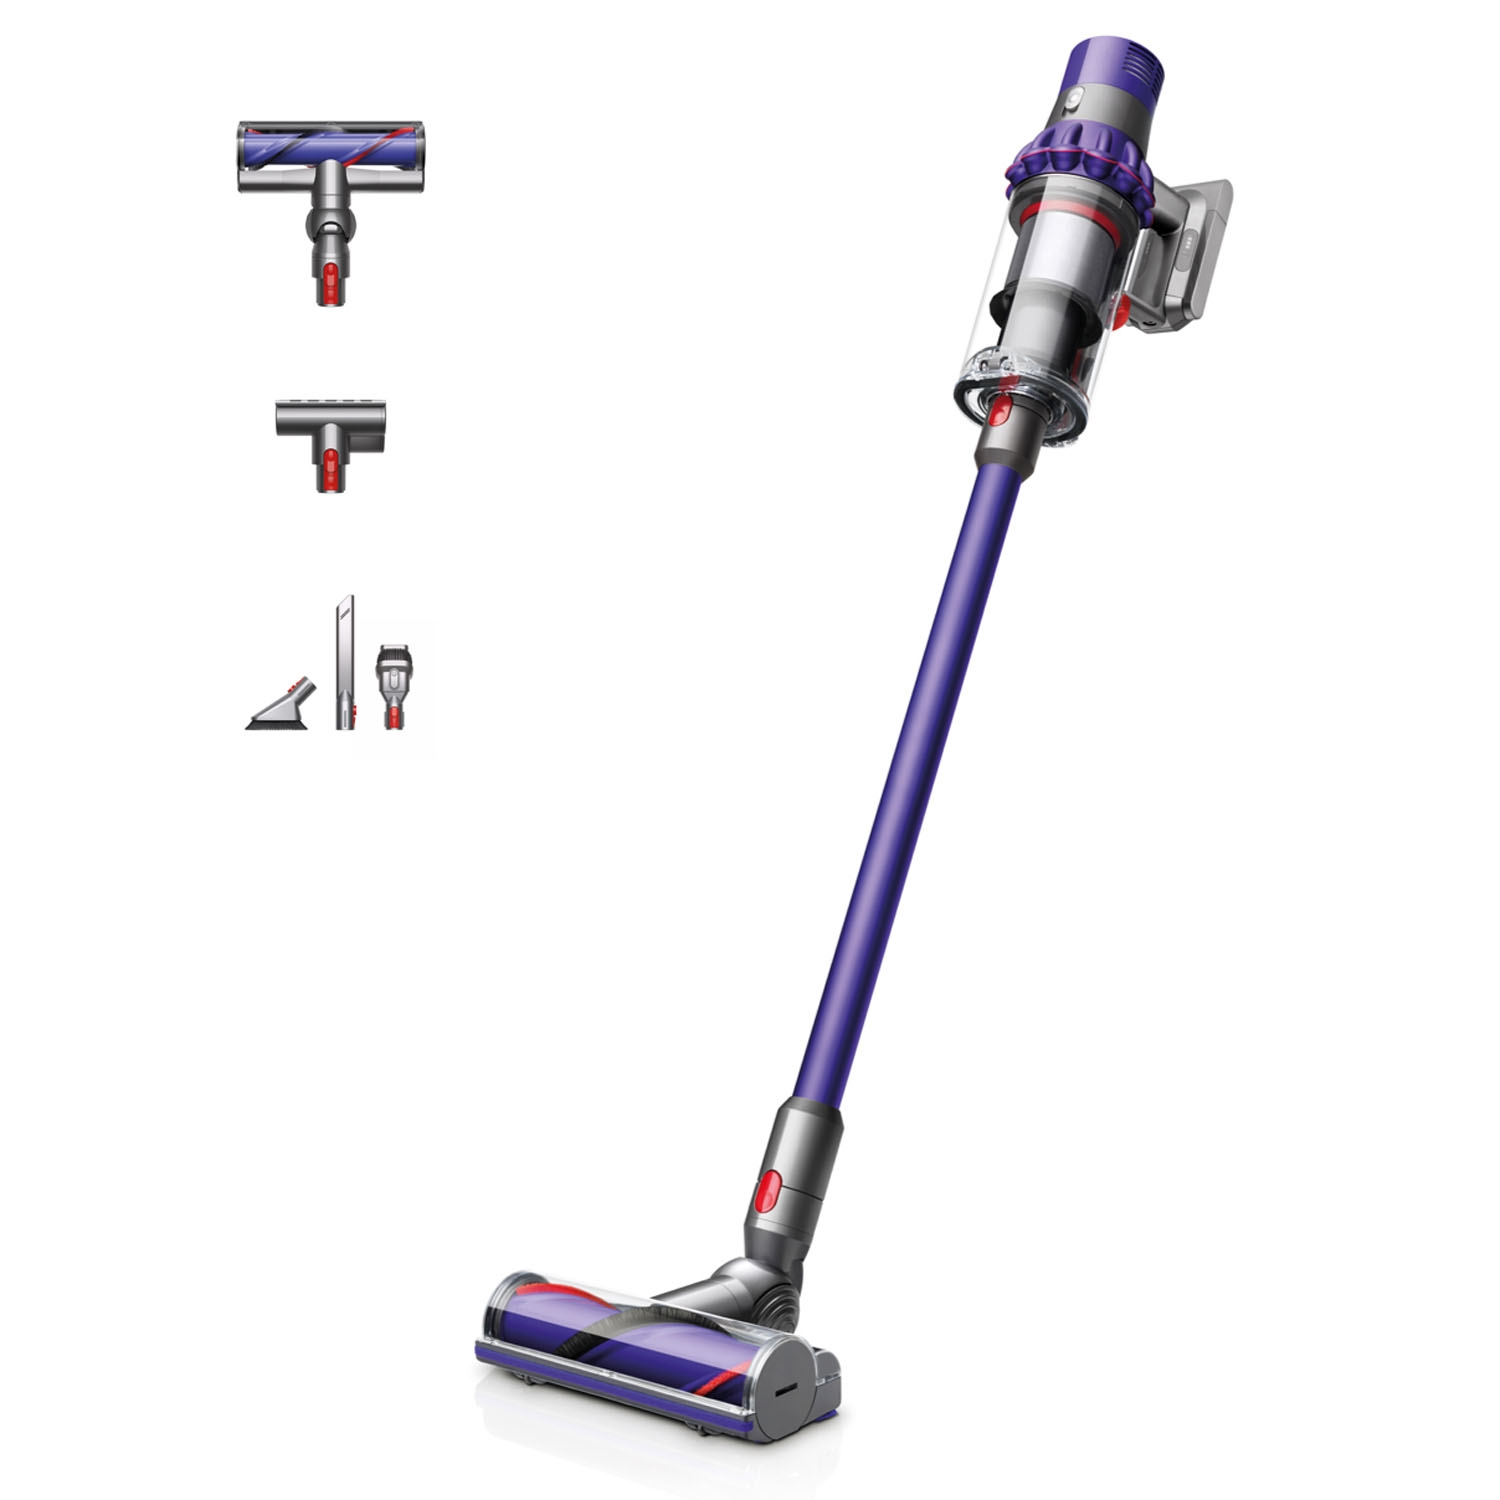 Image of Dyson Cyclone V10 Animal Cordless Vacuum Cleaner